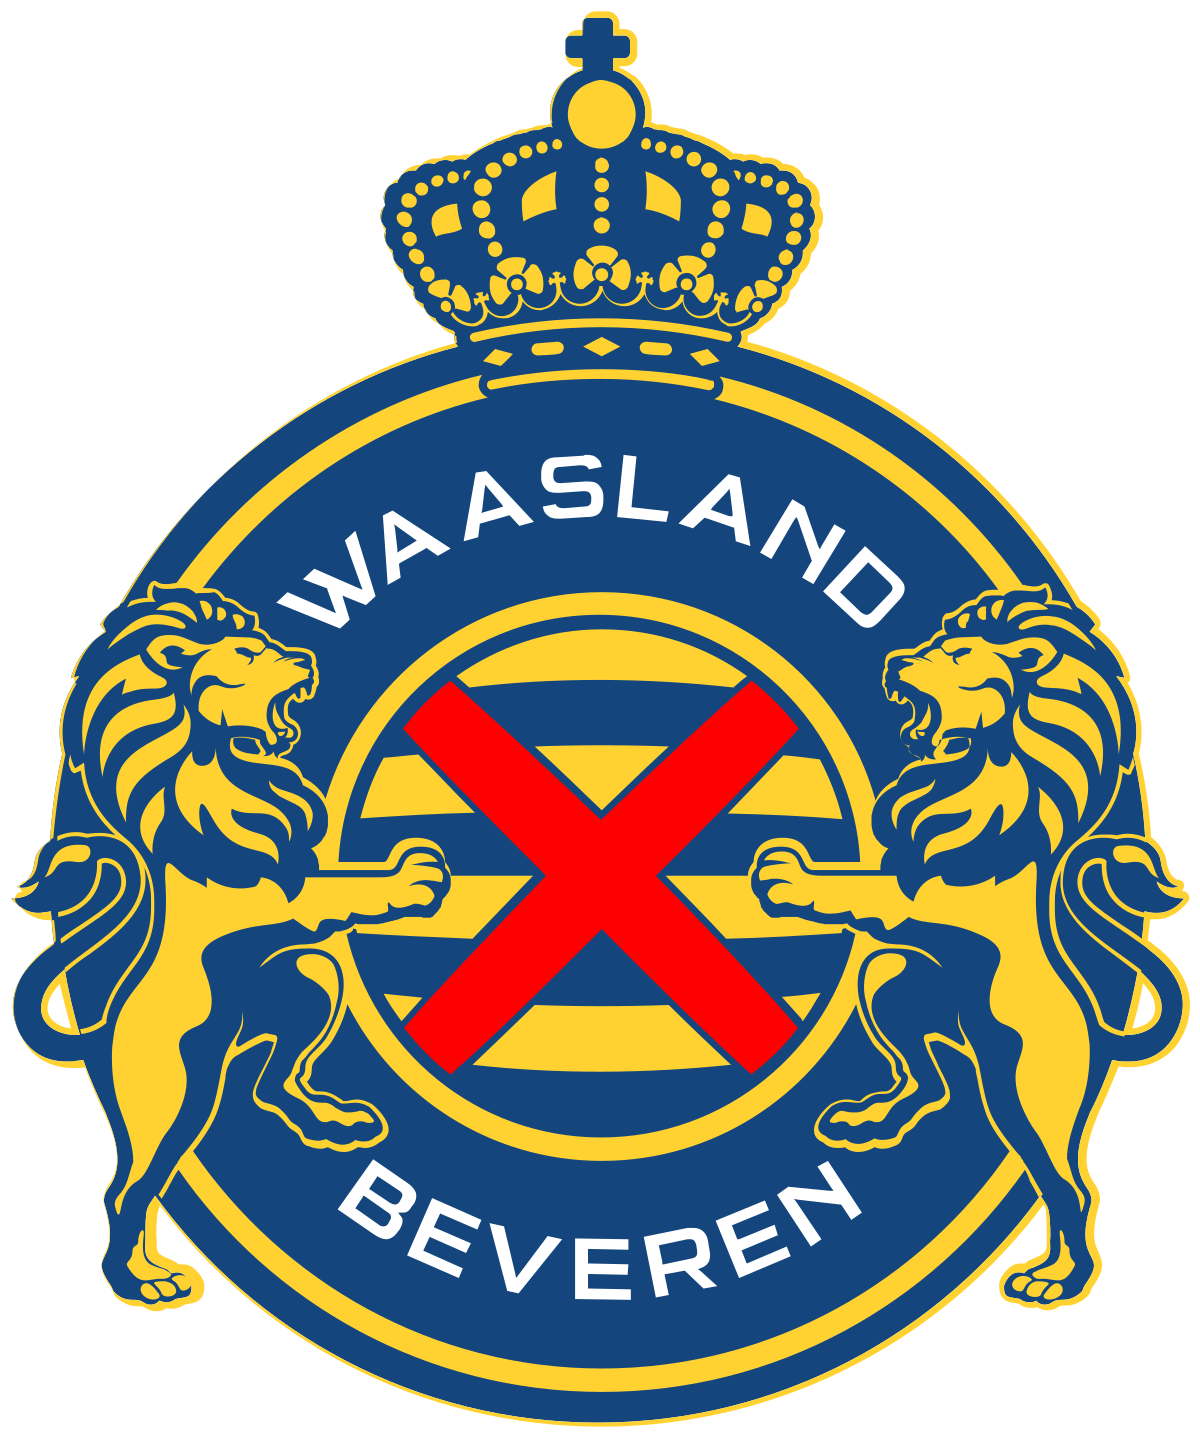 Places Waasland-Beveren